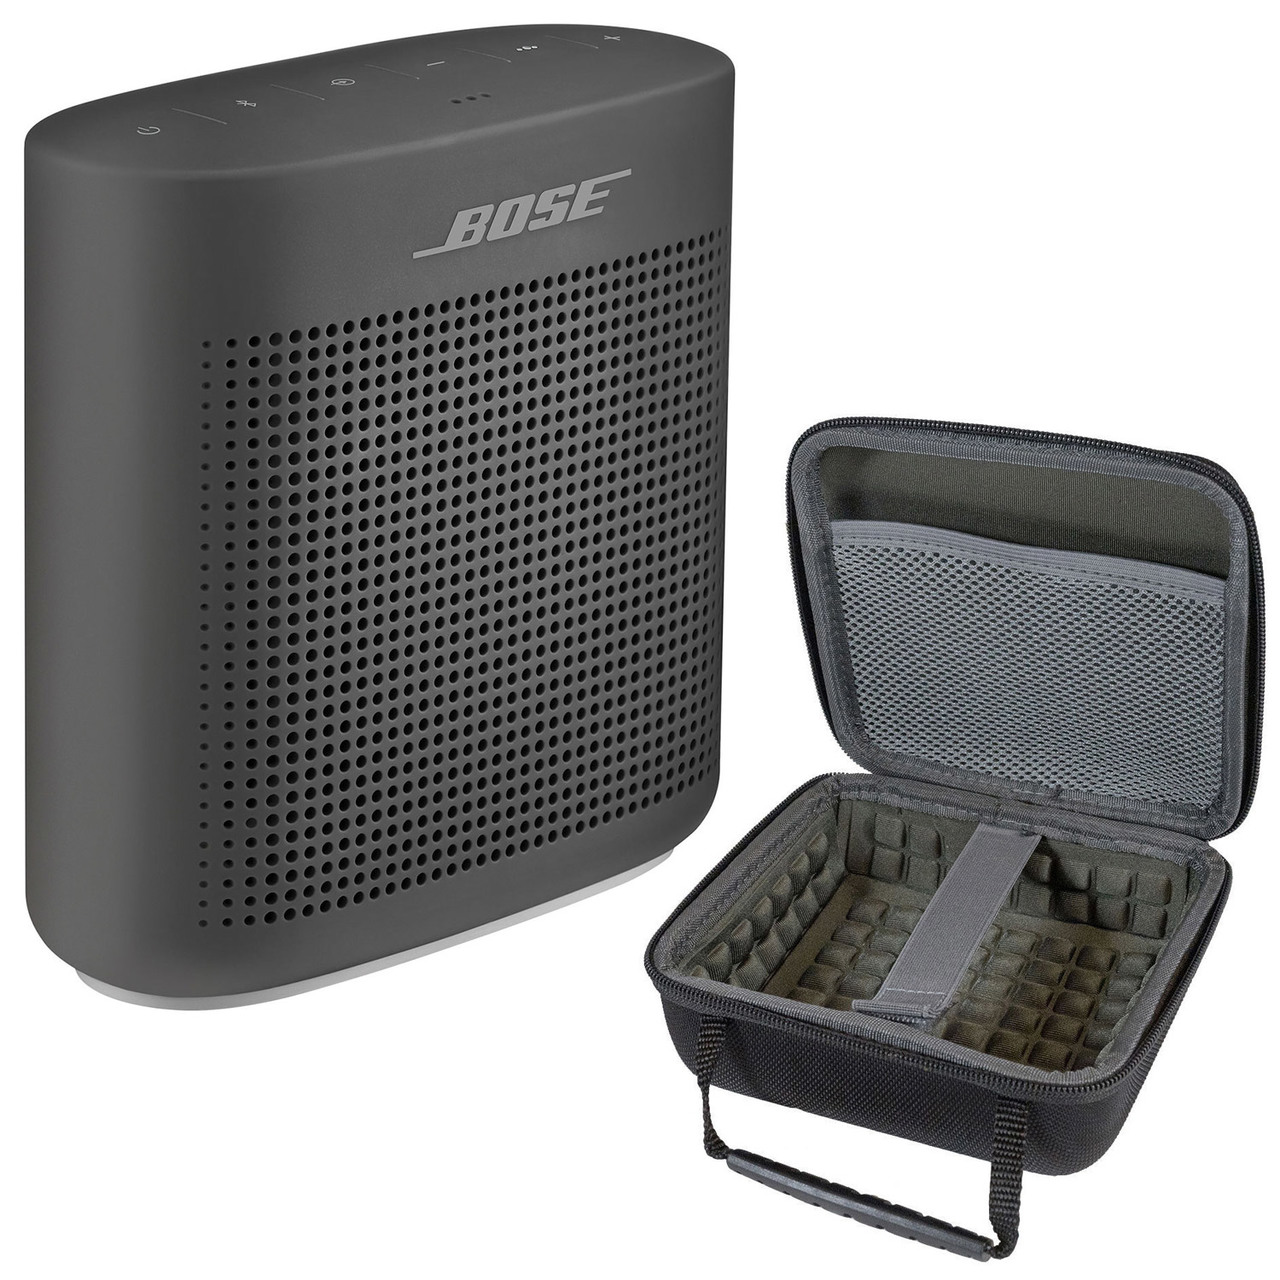 Bose SoundLink Color Bluetooth Speaker II Soft and Hardshell Case - Black